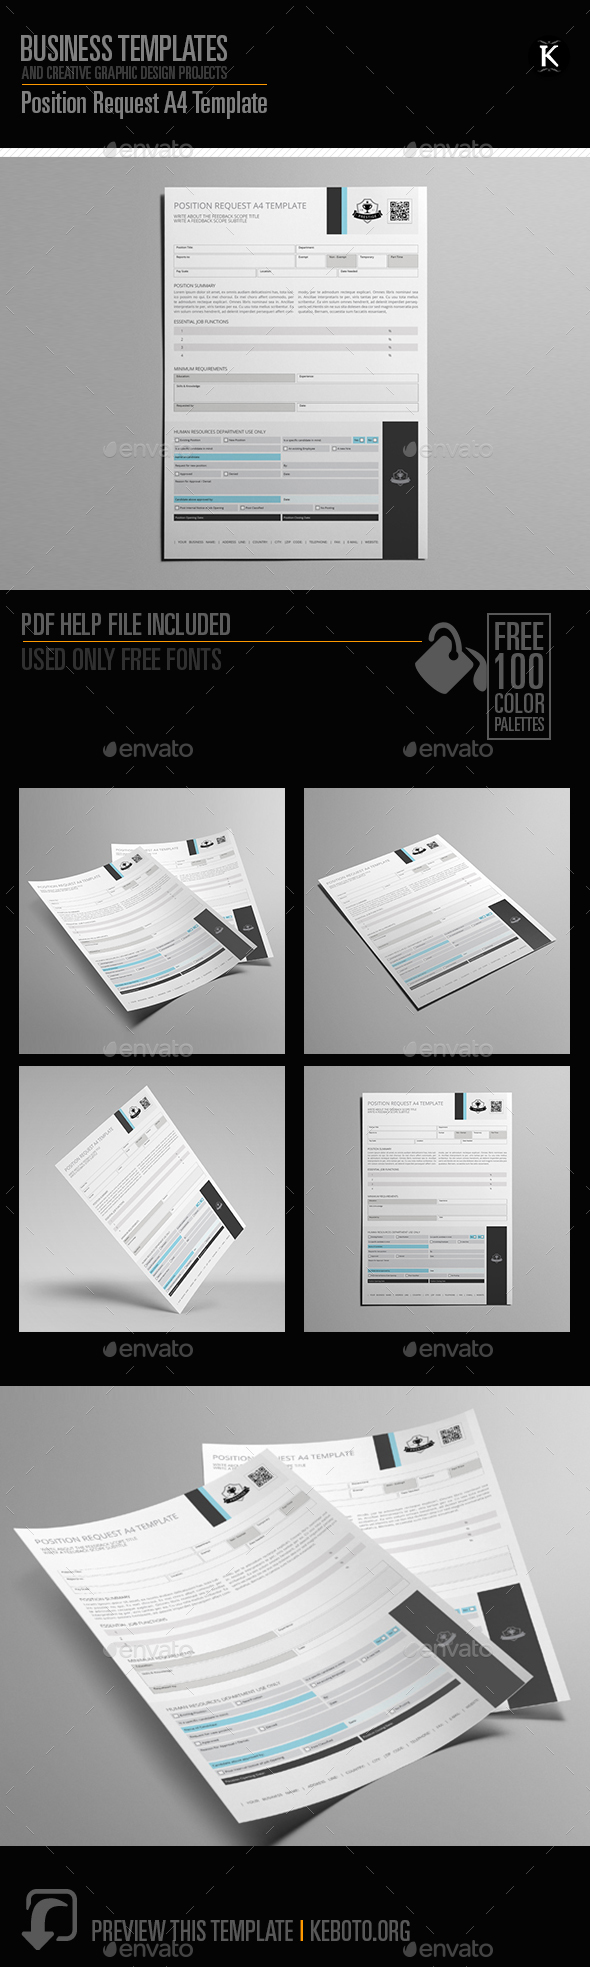 GraphicRiver Position Request A4 Template 20539803